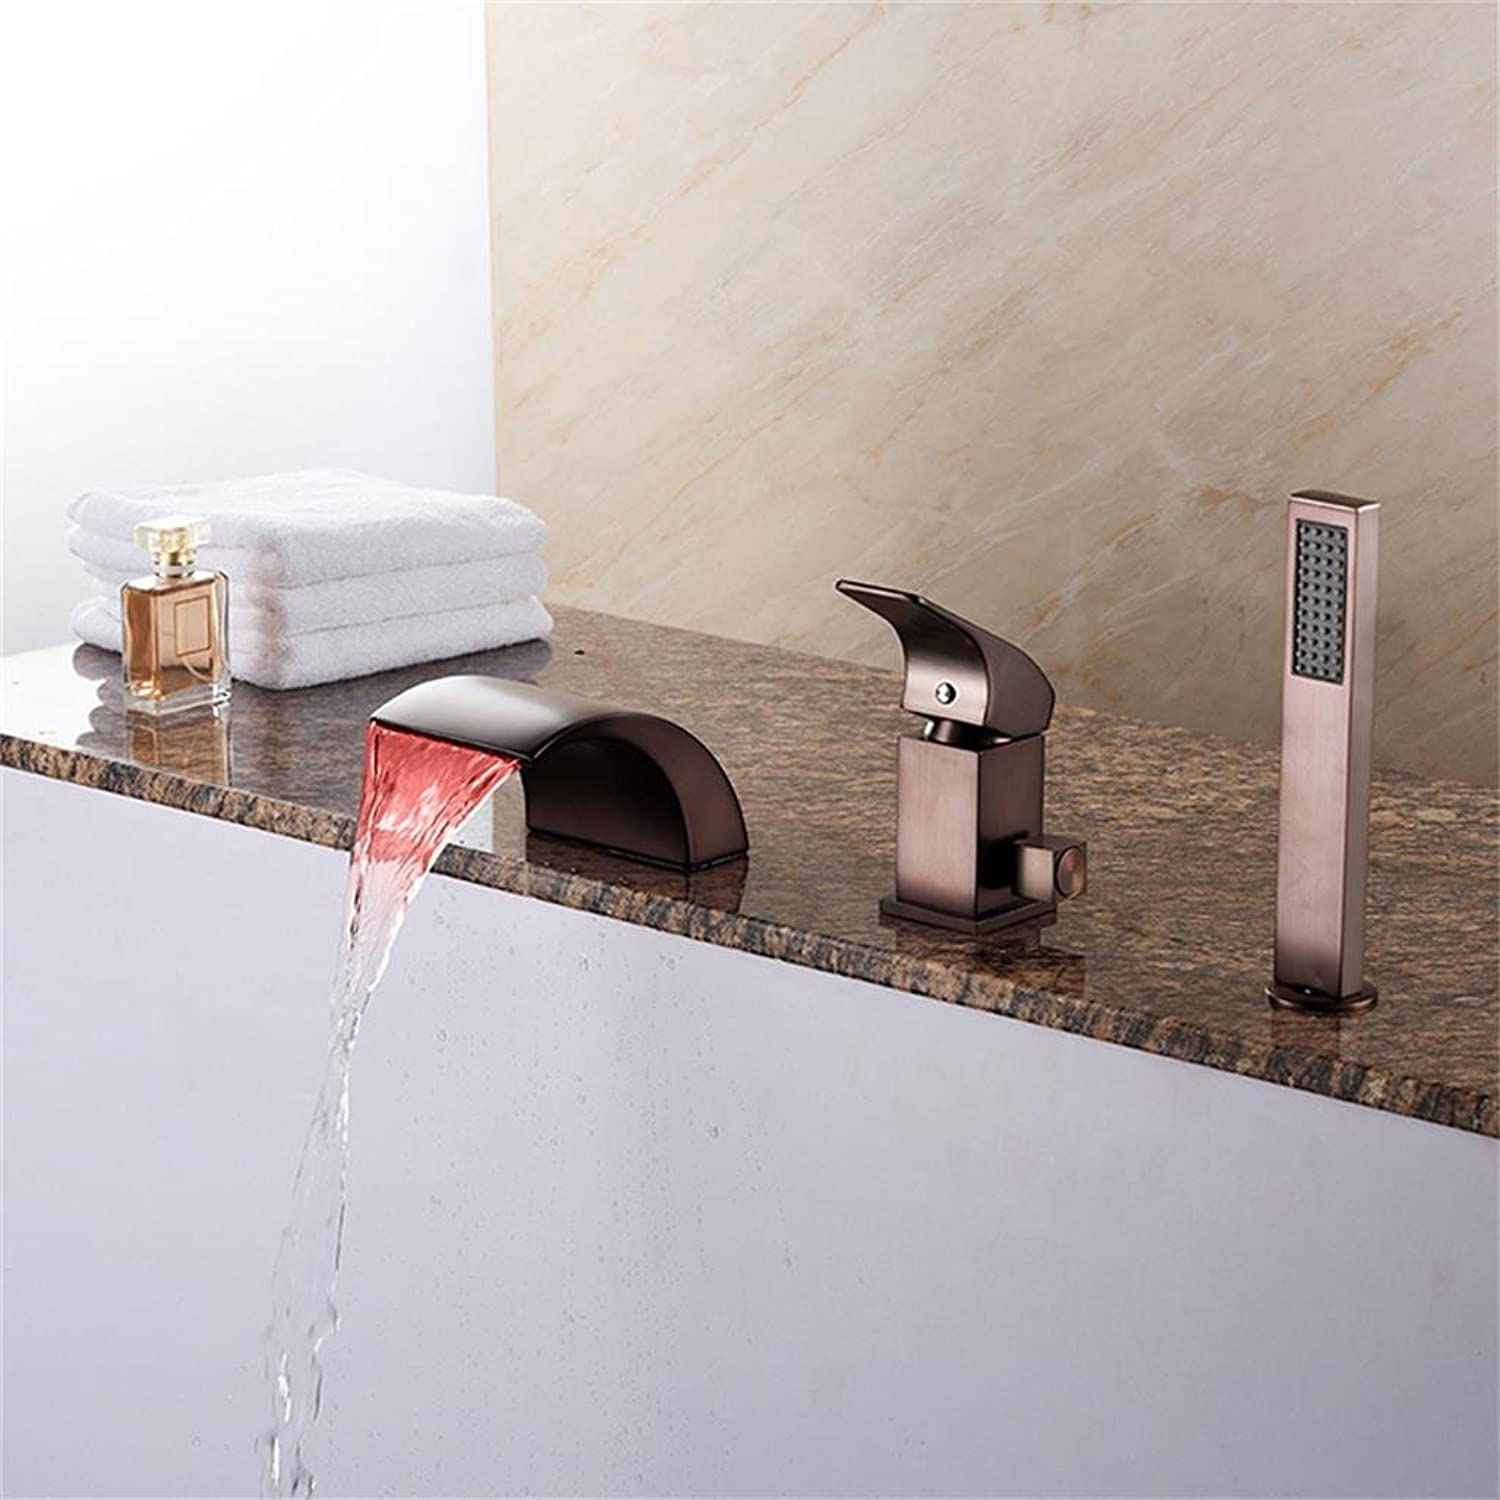 Uncle Sam LI - LED Antique Roman Tub Waterfall with Ceramic Valve One Handle Three Holes for Oil-rubbed Bronze , Bathtub Faucet